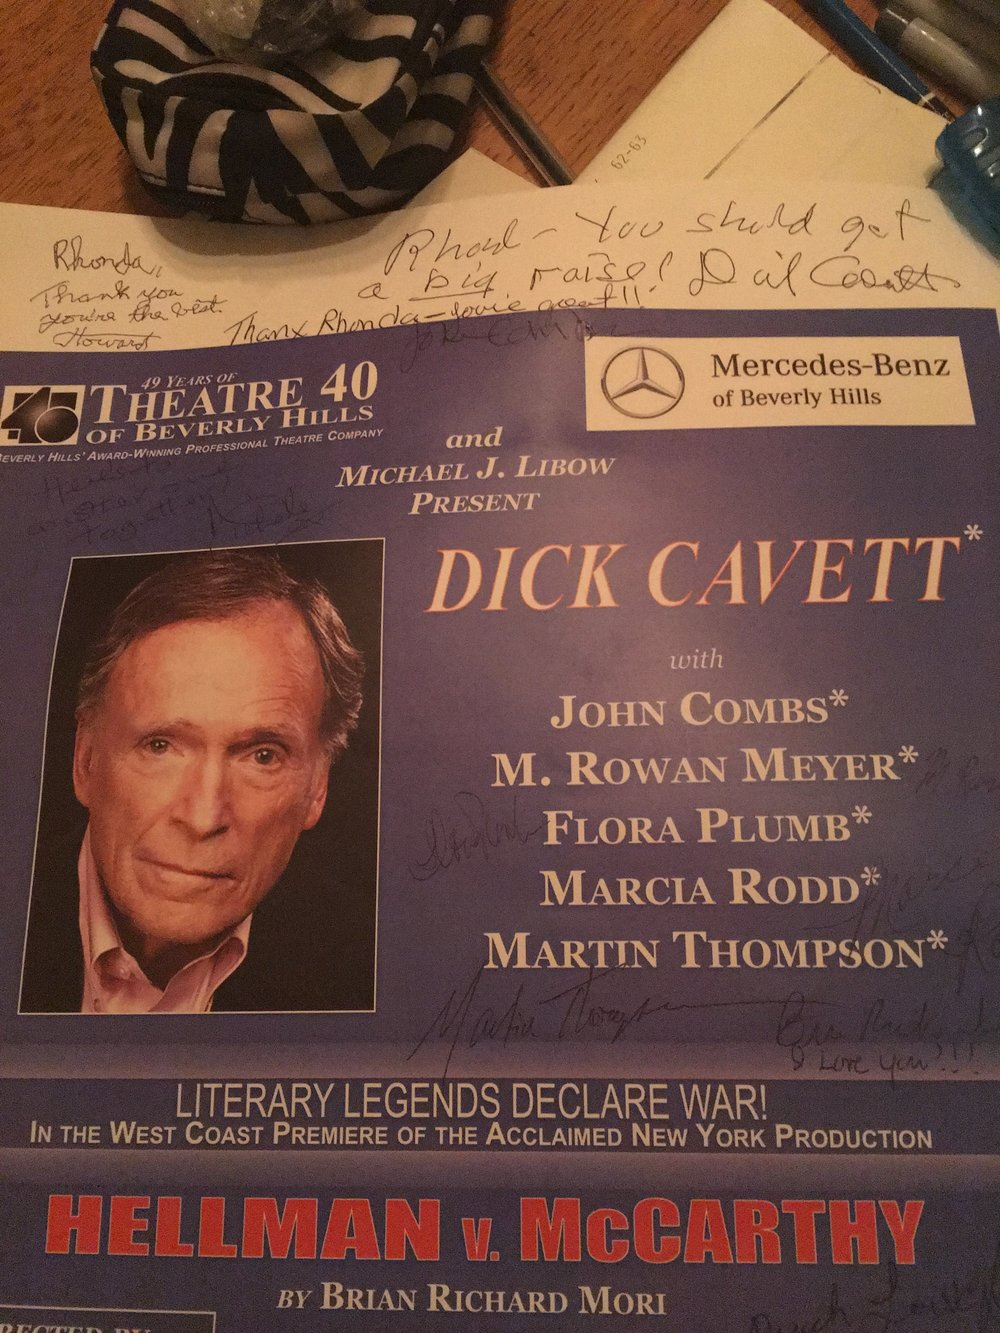 Rhonda Assistant Directed Dick Cavett's Award Winning Show. Above poster with personal message (2014).  I have a Letter of Reference from the famous director, Howard Storm, mentioning what Dick wrote on my poster.